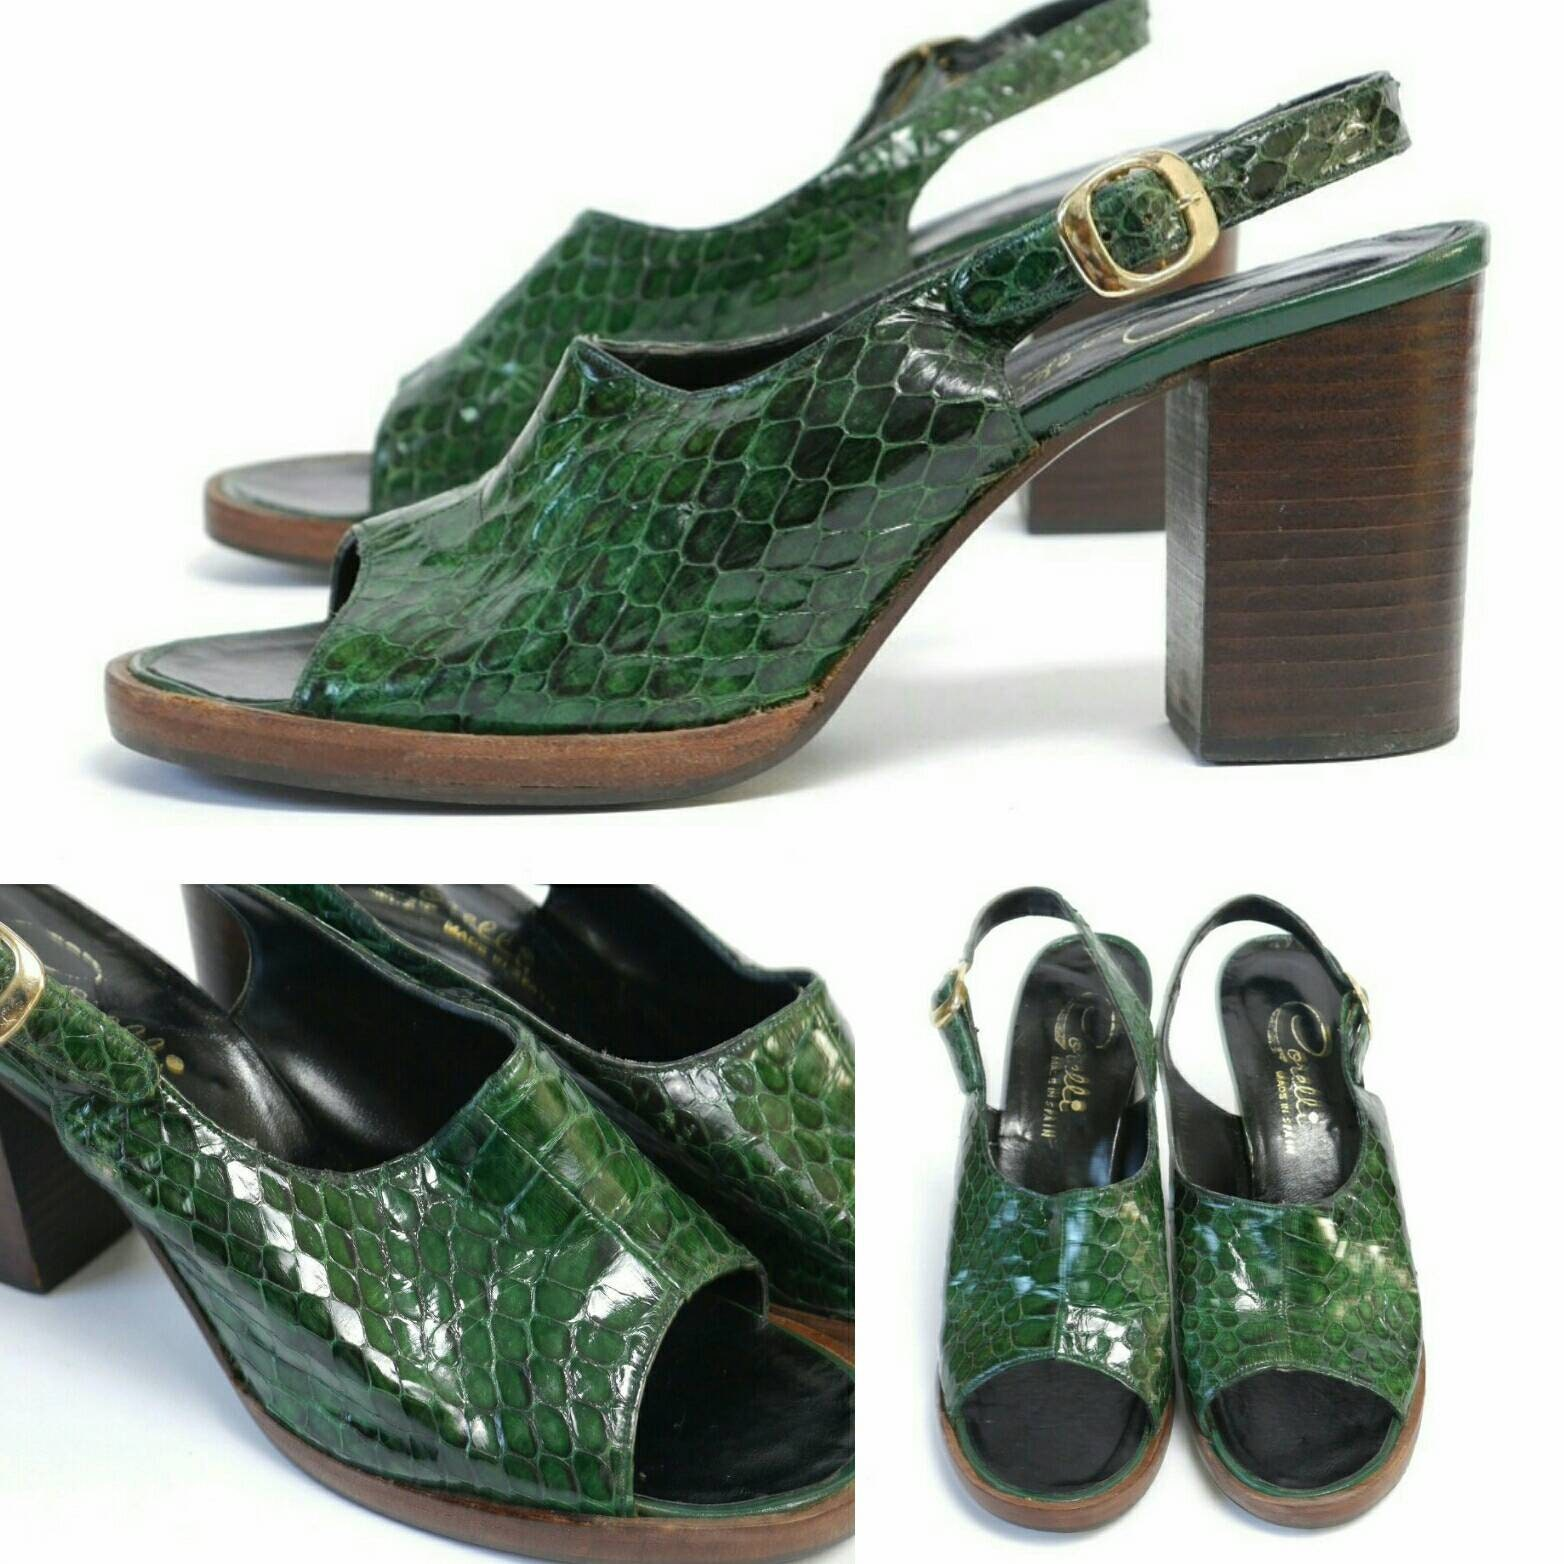 RESERVED reptile for HEATHER/Vintage 60s Green reptile RESERVED open toe slingback sandals by Corelli/size 8M a3d829